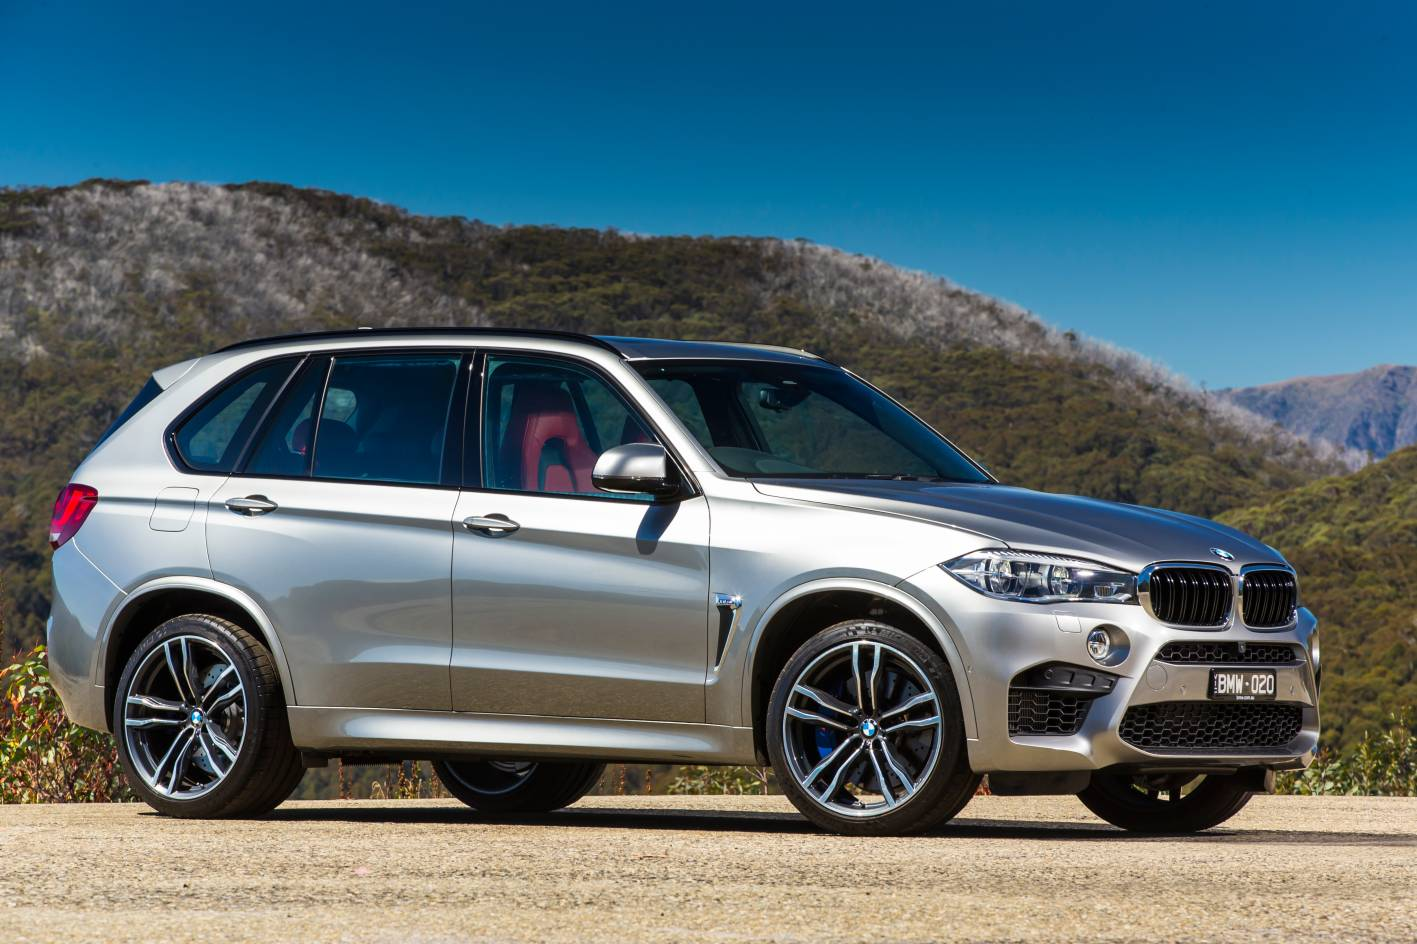 2015 bmw x5 m and x6 m arrive in oz with stonking 423kw. Black Bedroom Furniture Sets. Home Design Ideas